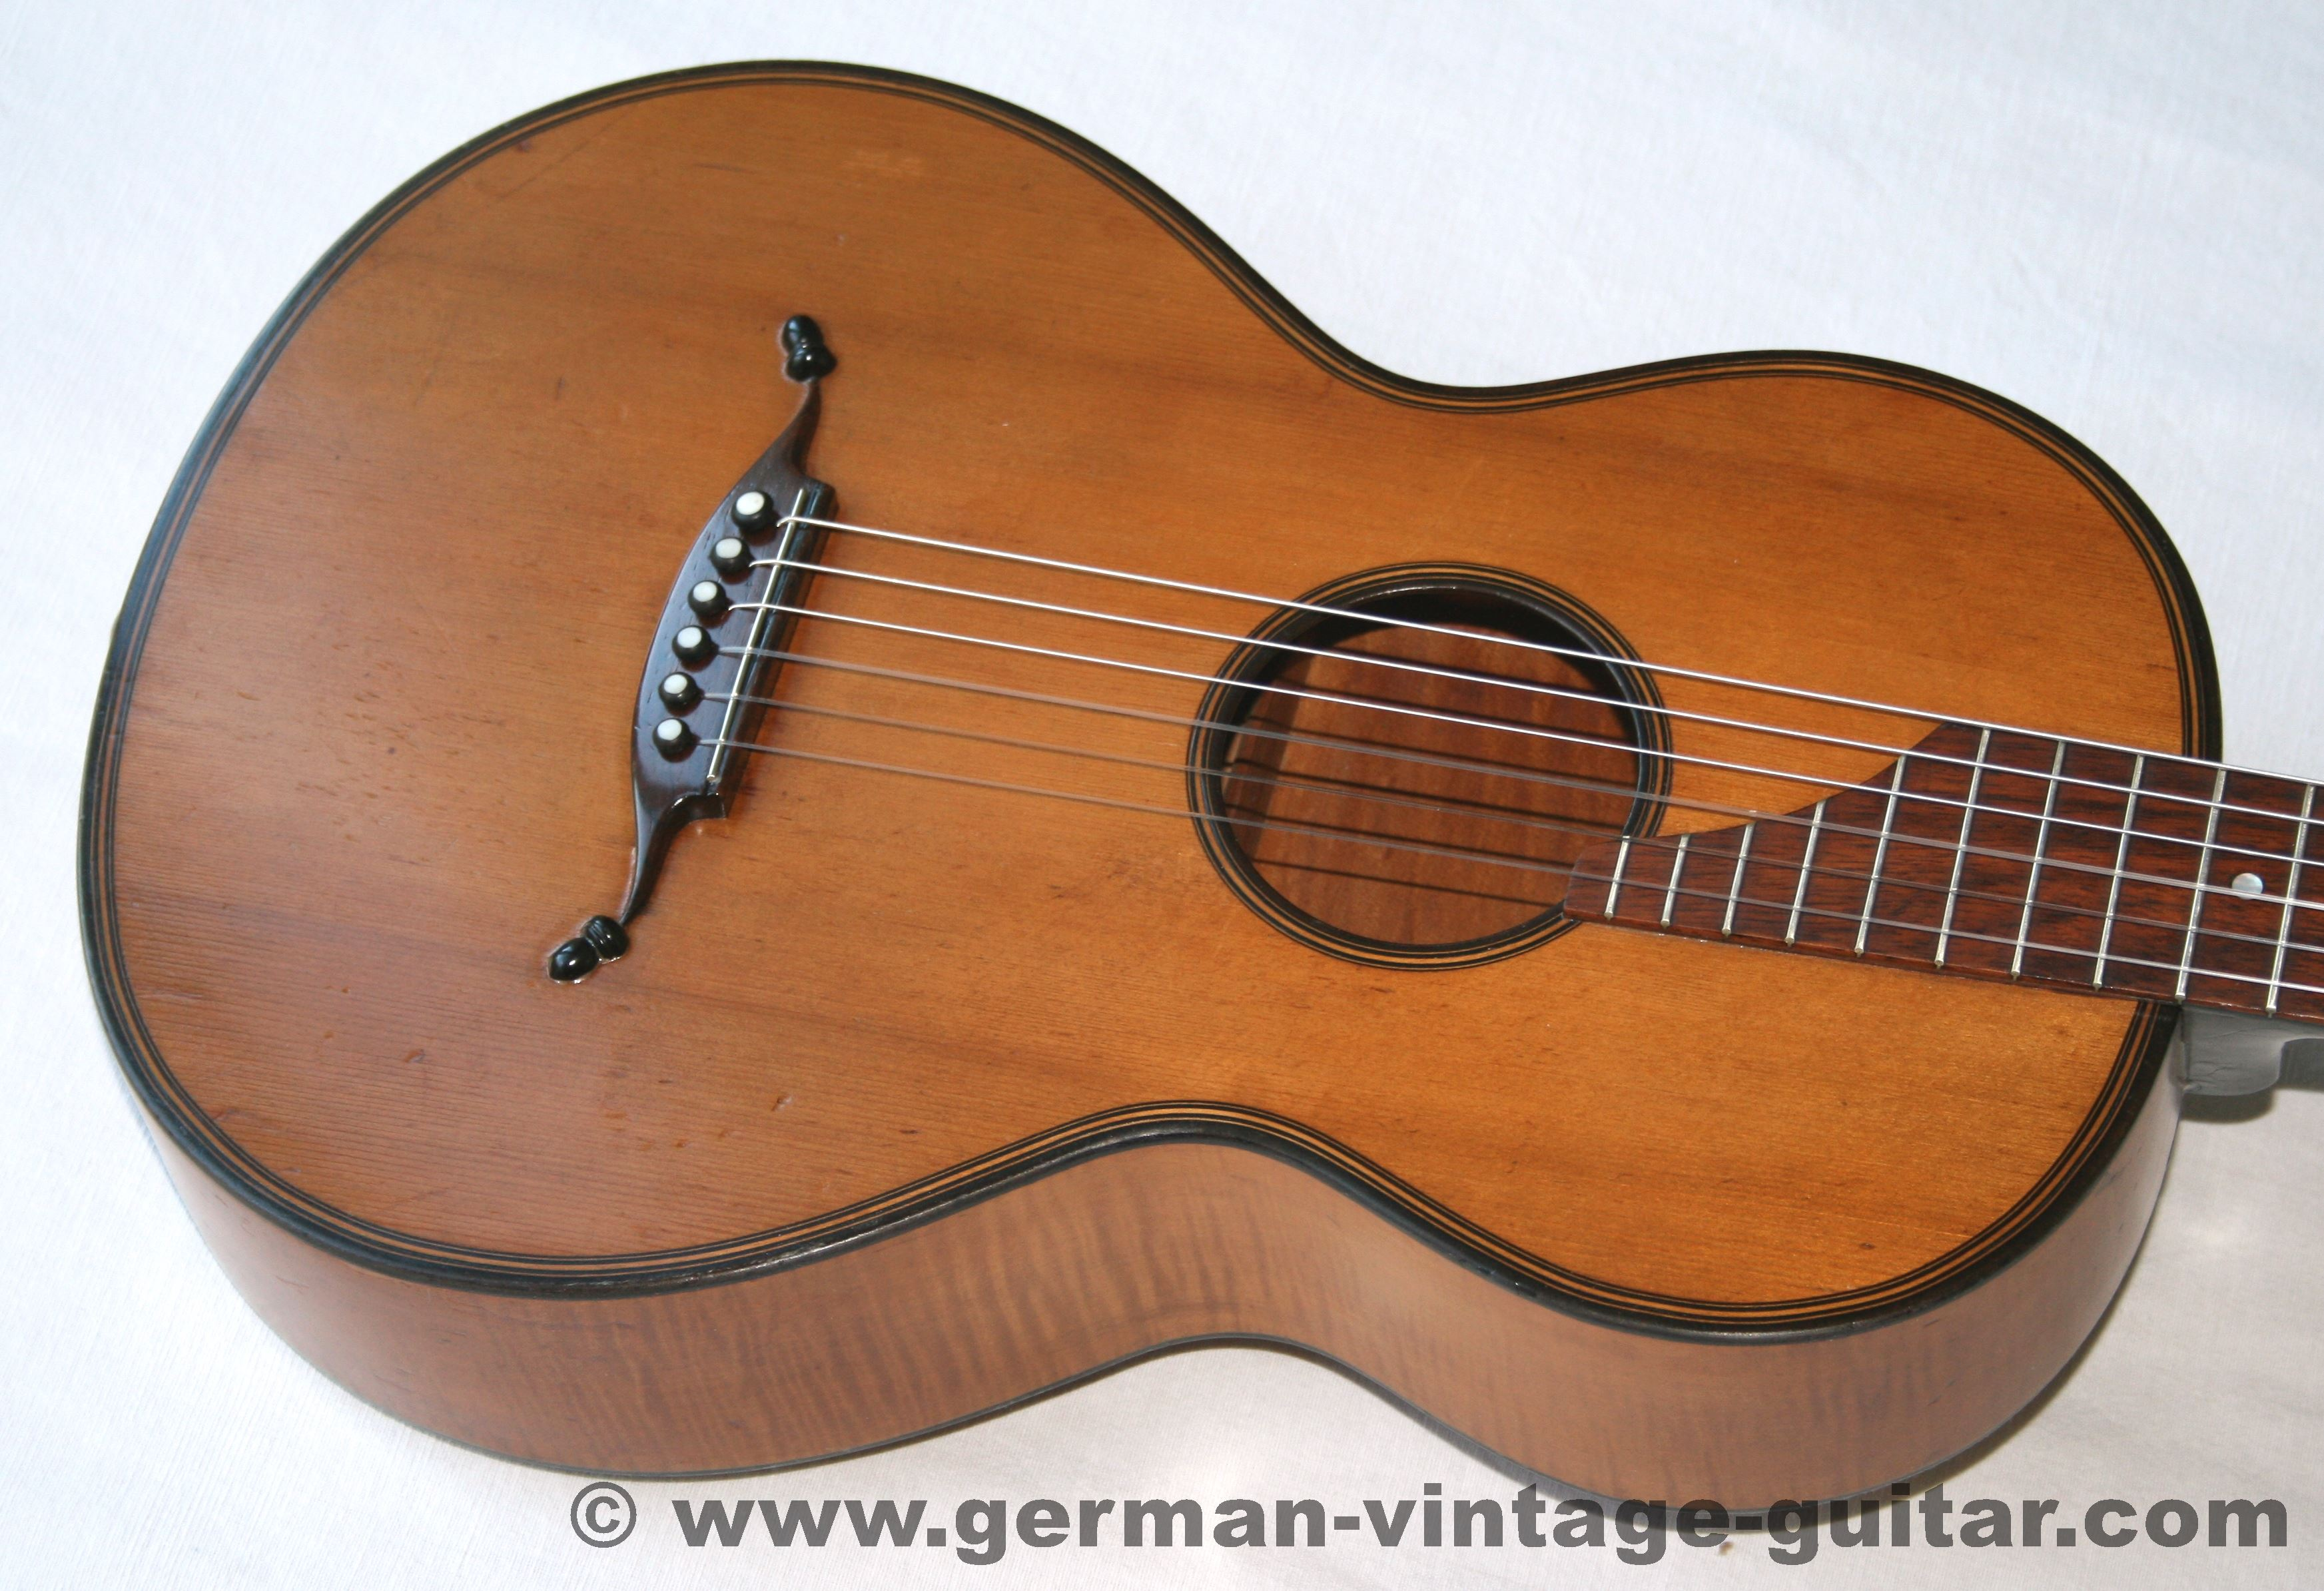 Manufacture ware string instruments